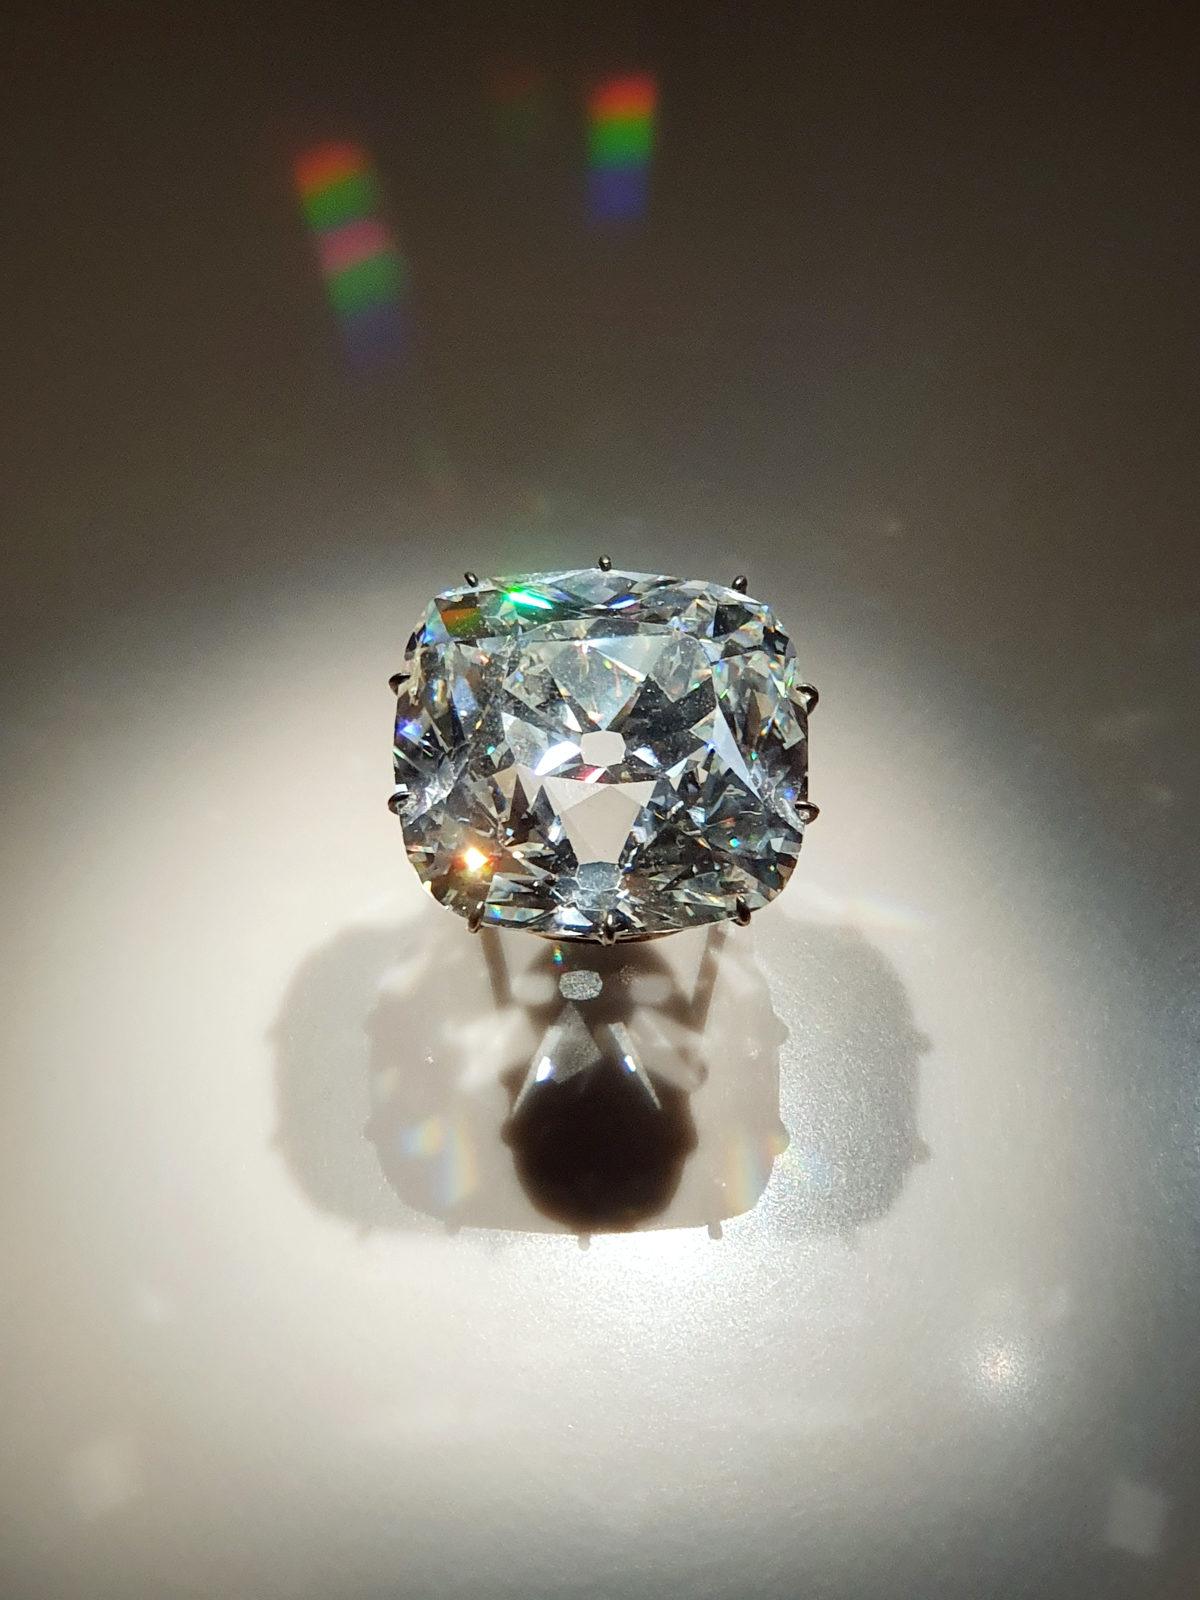 Diamants de la Couronne